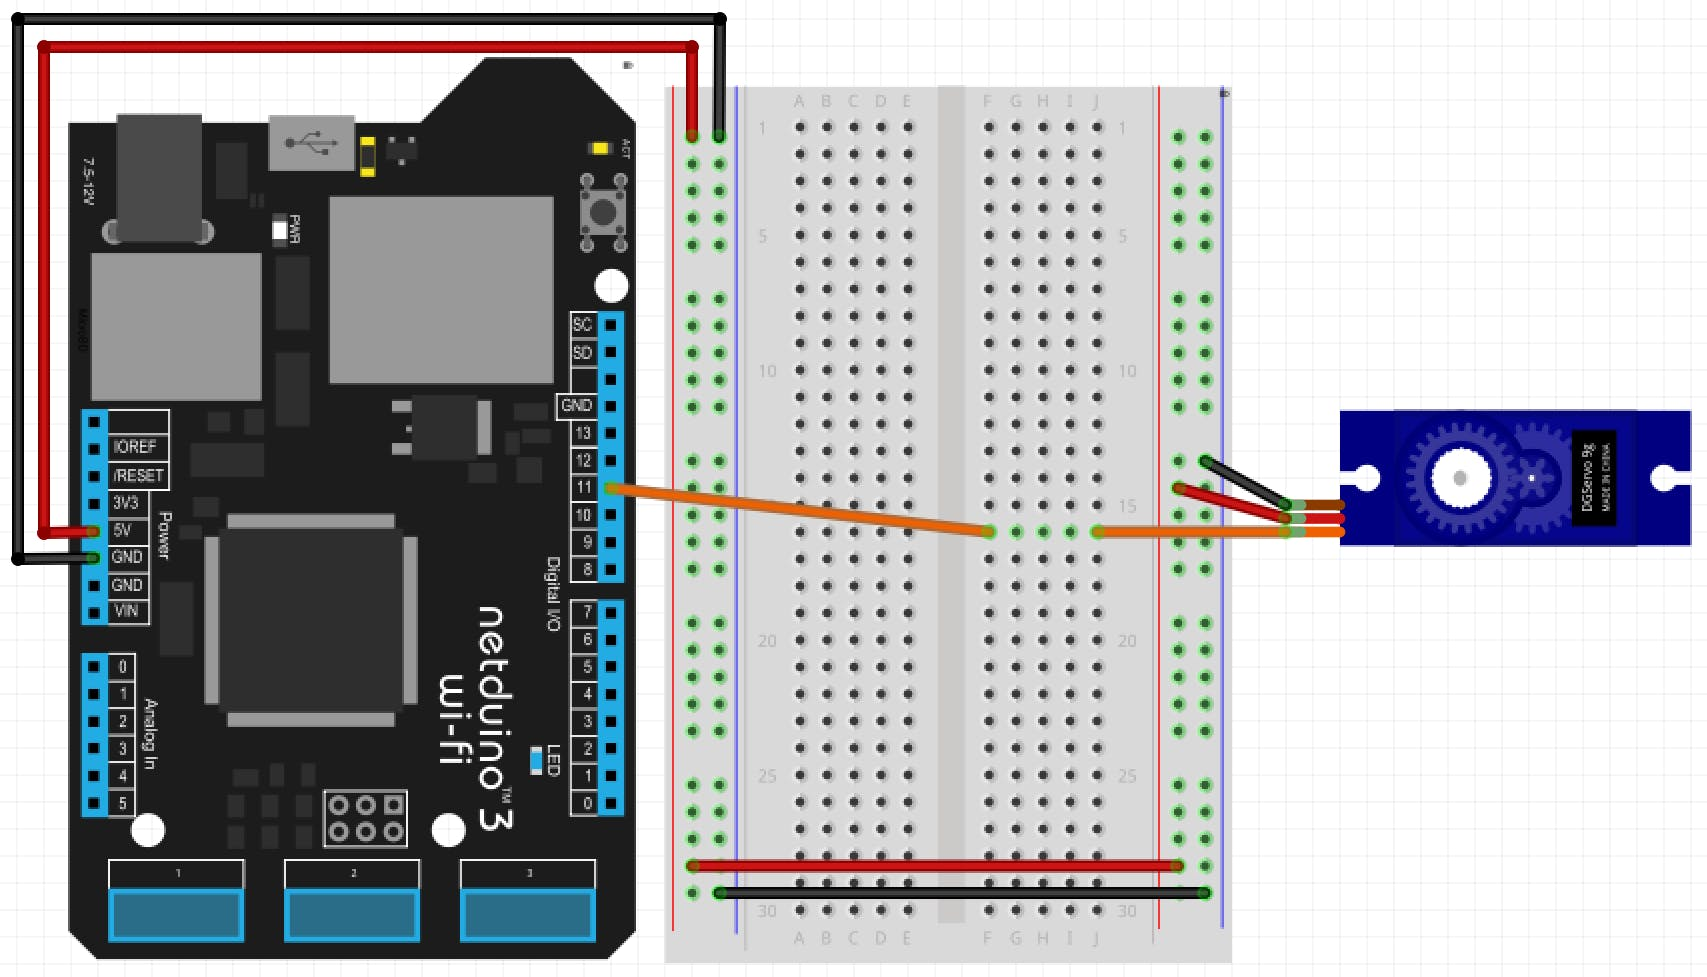 Connecting a servo with a Netduino for testing purposes